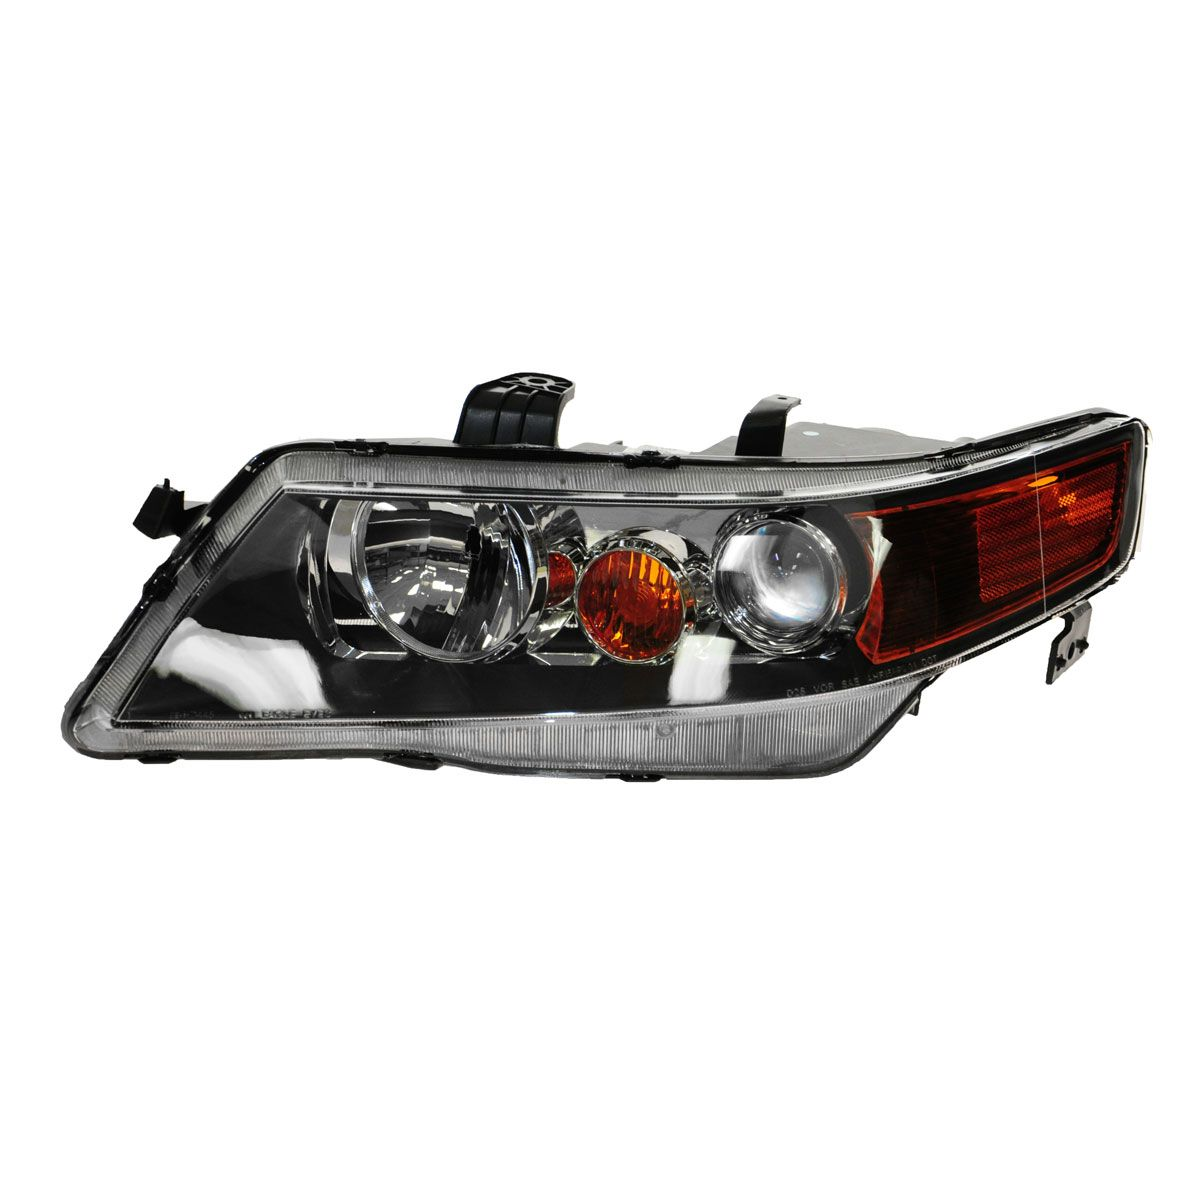 HID Xenon Headlight Headlamp Driver Side Left LH NEW For